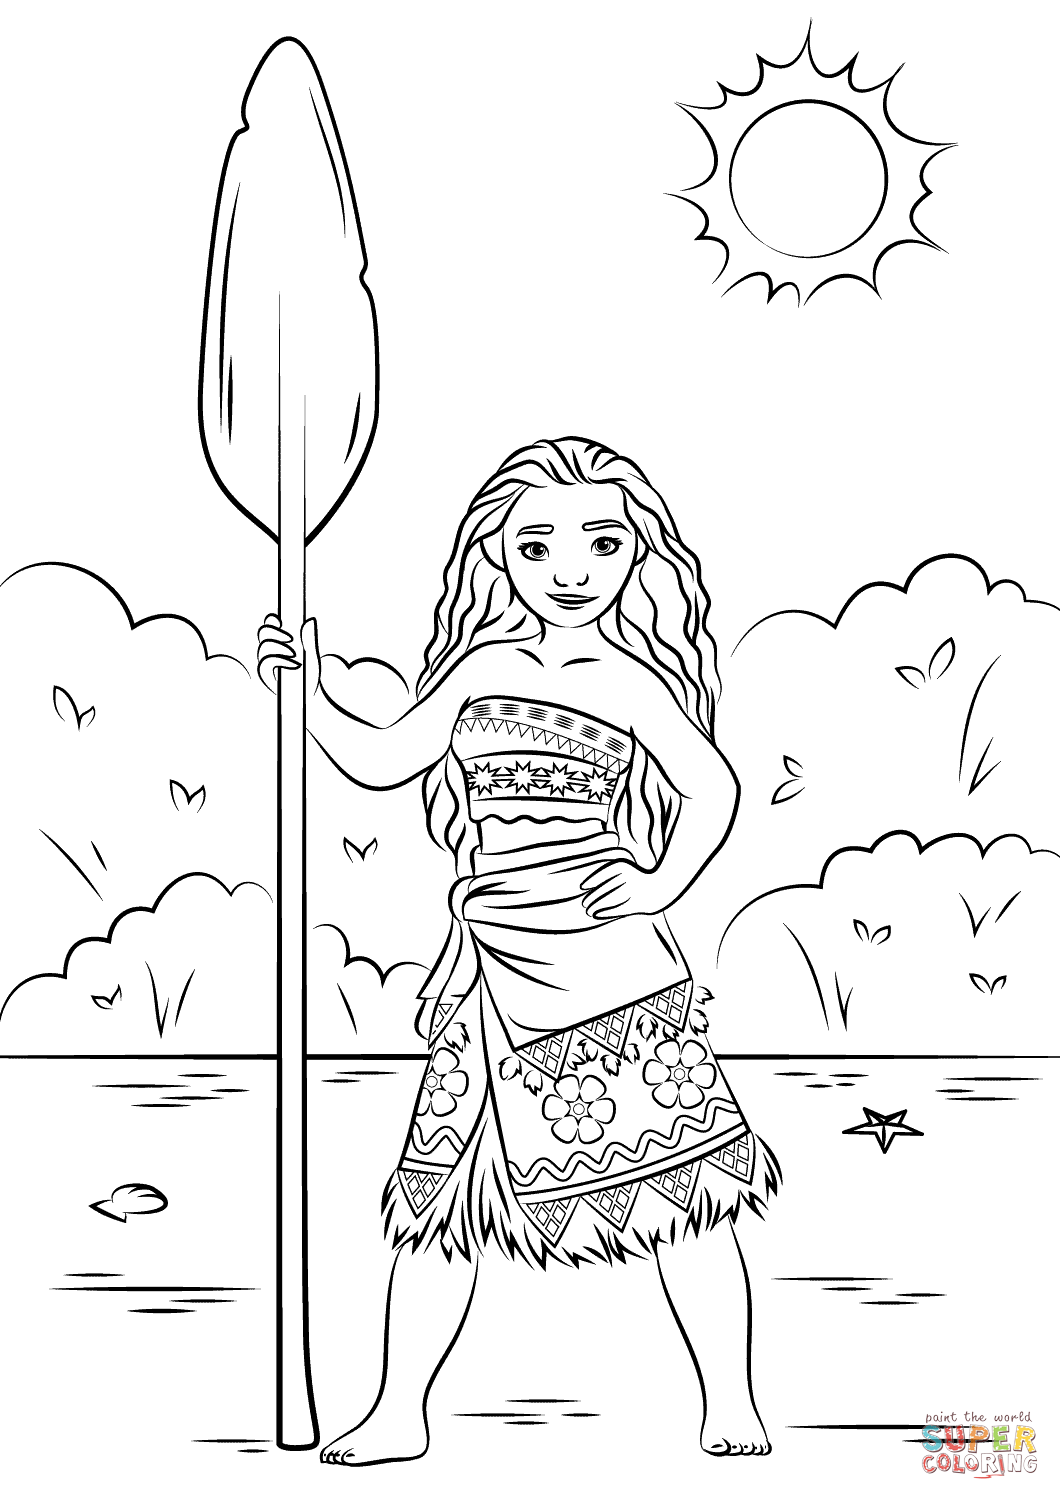 Click the princess moana coloring pages to view printable version or color it online compatible with ipad and android tablets